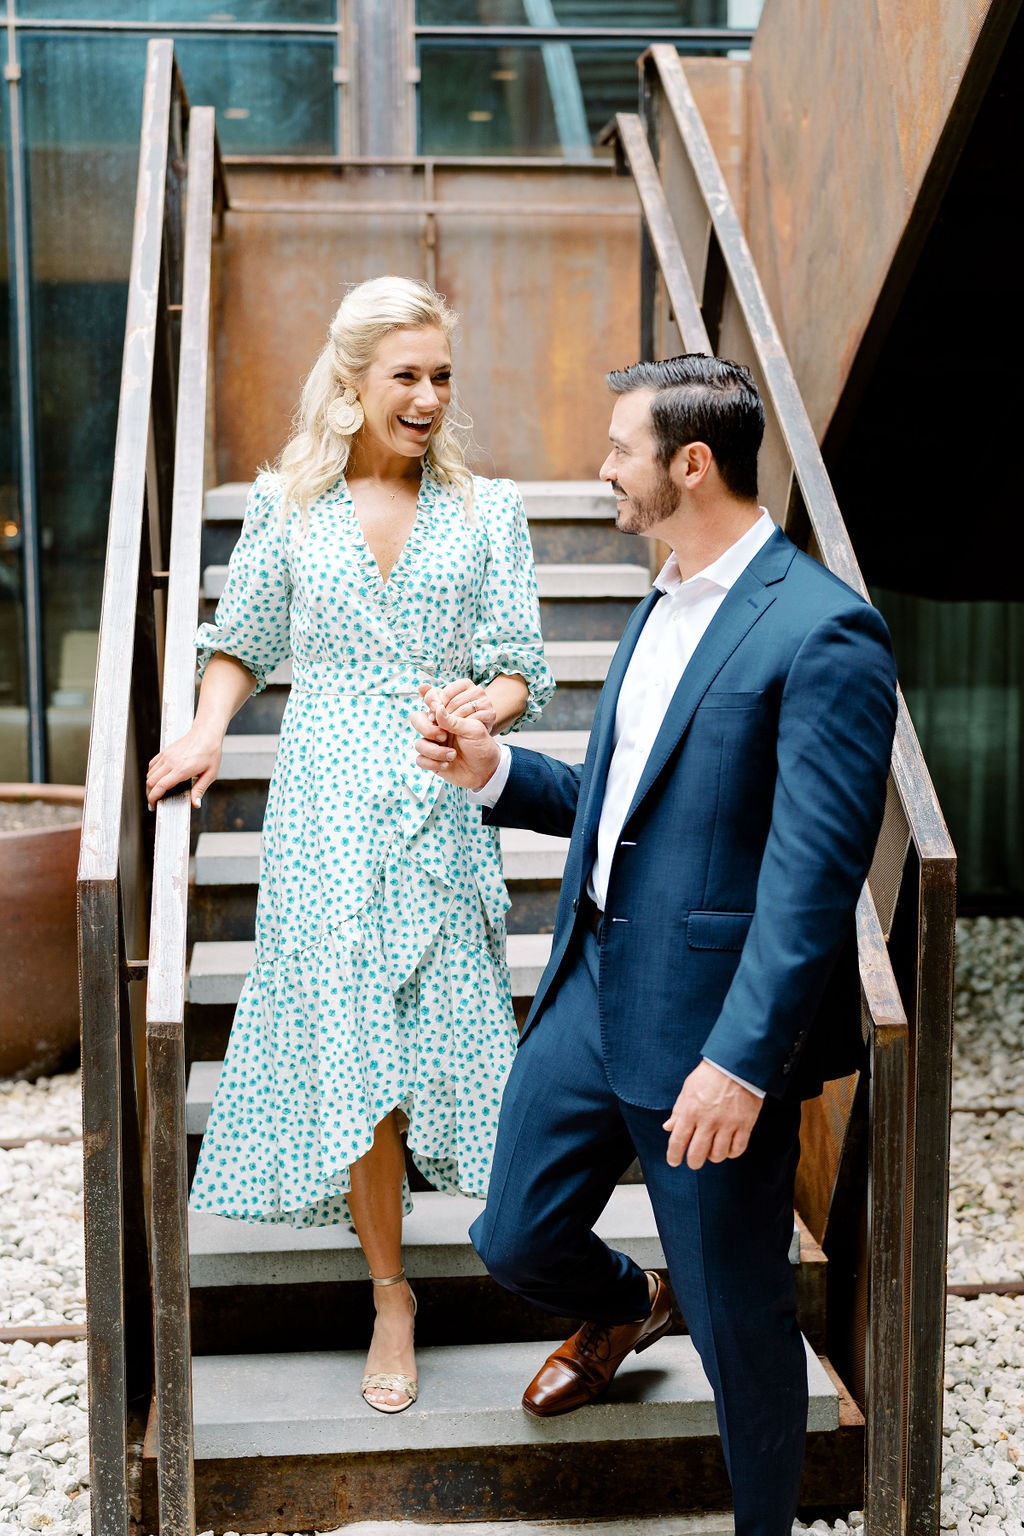 Austin-Elopement-Intimate-Wedding-Photographer-South-Congress-Hotel-Engagement-Session-12.jpg